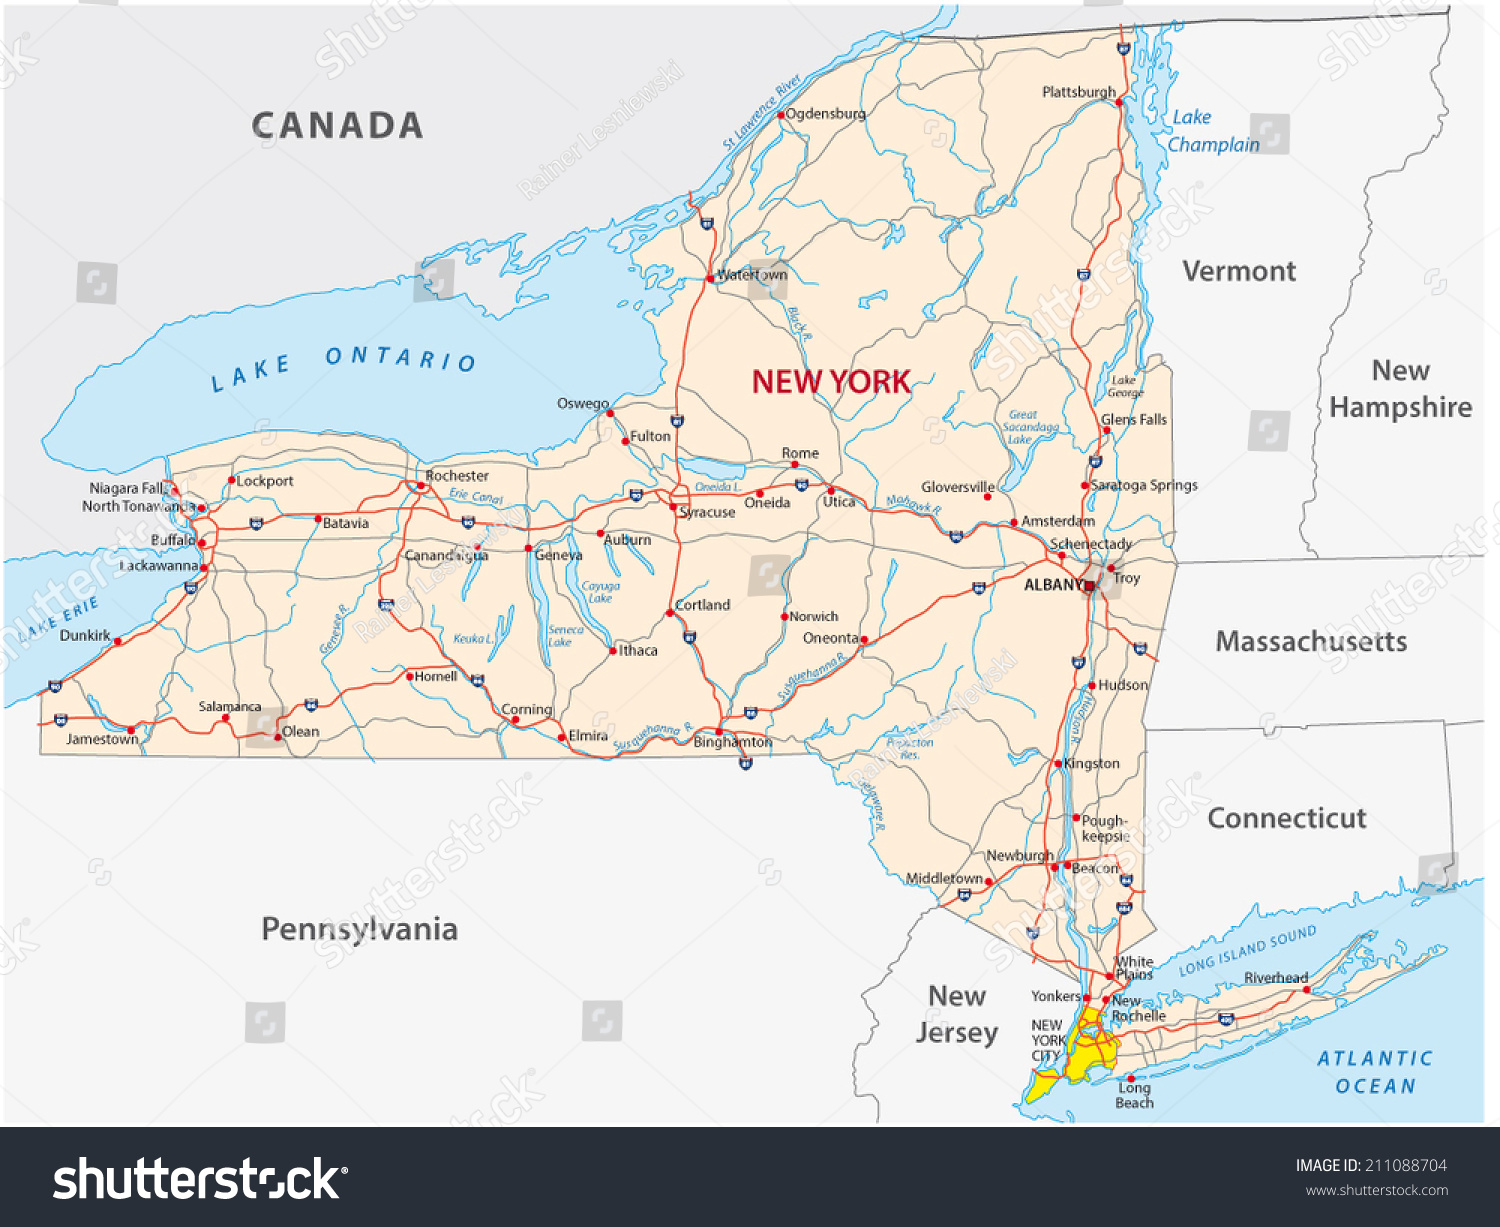 New York State Road Map Stock Vector Shutterstock - Road map new york state